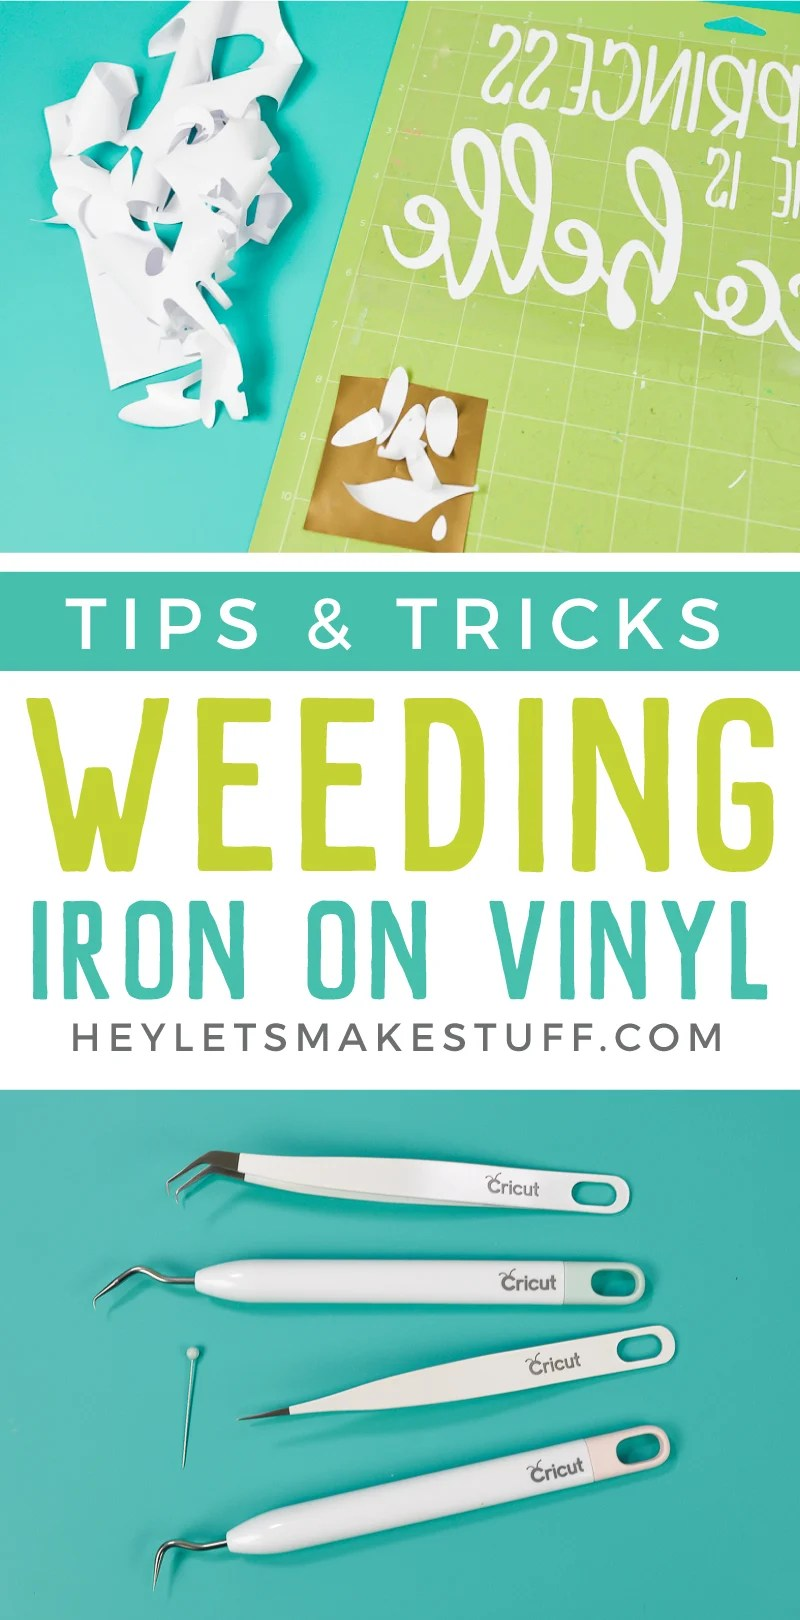 Frustrated weeding iron on vinyl for projects made using your Cricut or other cutting machine? Here are tips and tricks to make weeding HTV easier! via @heyletsmakestuf